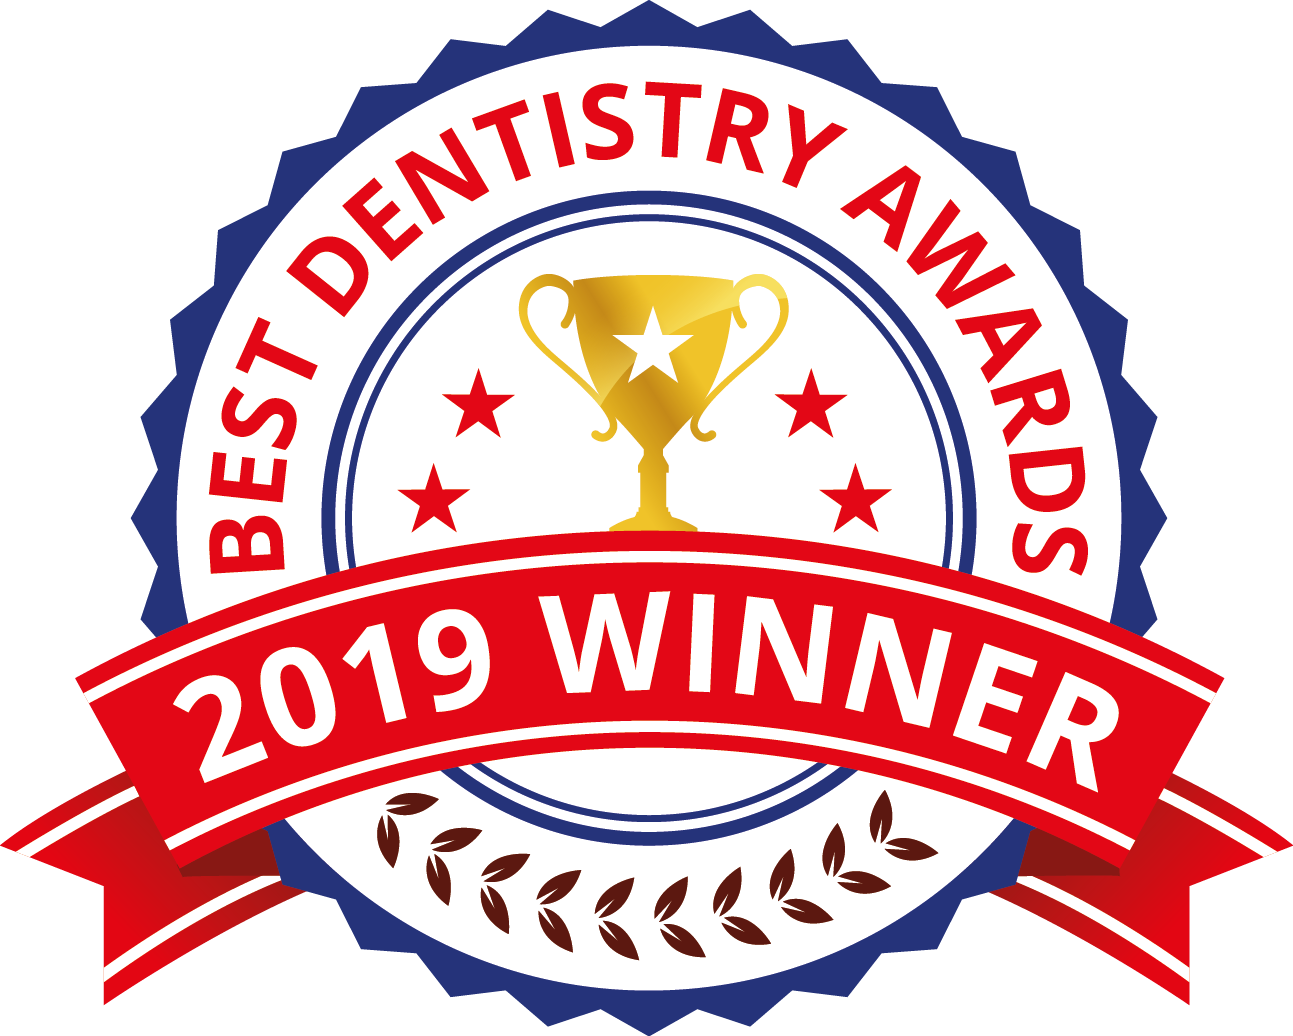 Best Dentistry Award Winner